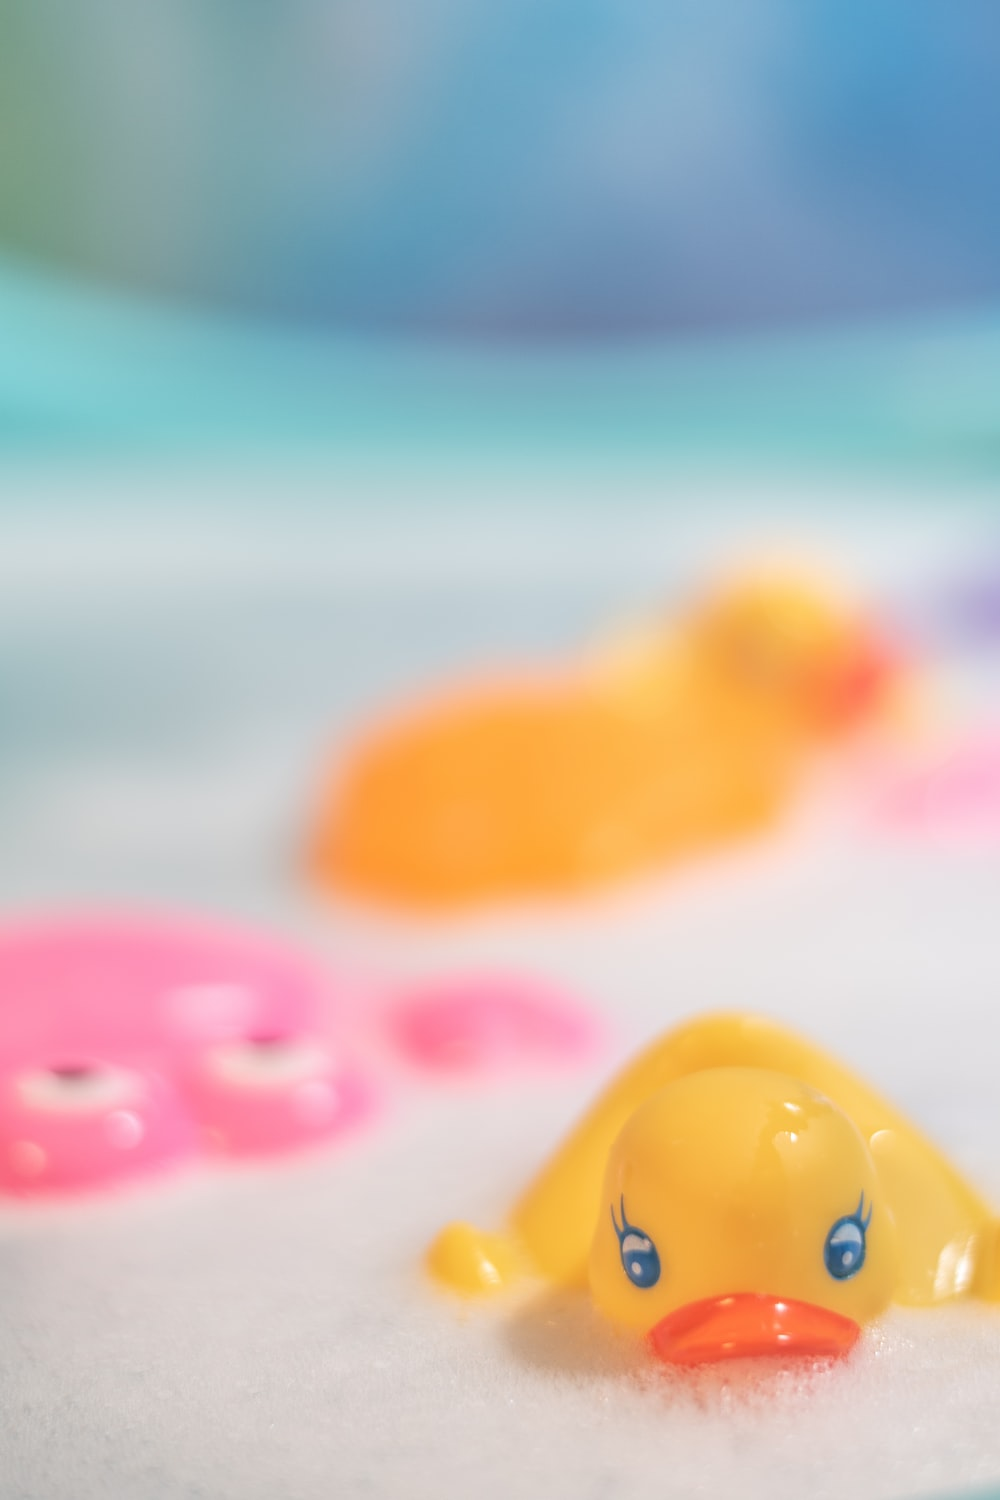 yellow and pink plastic toys